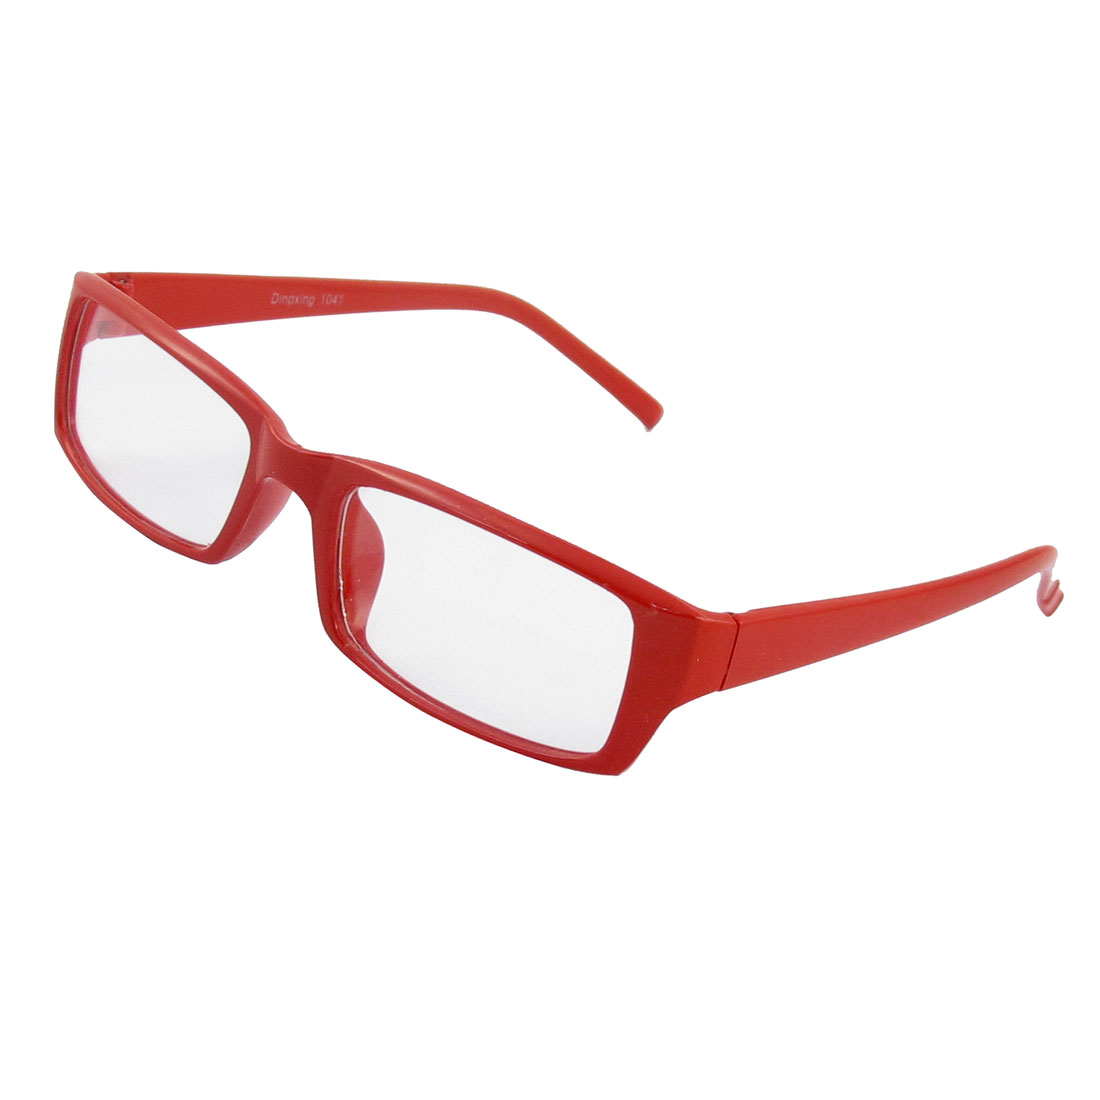 1122b6df21bd Ladies plastic red arms nerd geek clear lens plain rimmed glasses jpg  450x450 Red rimmed glasses